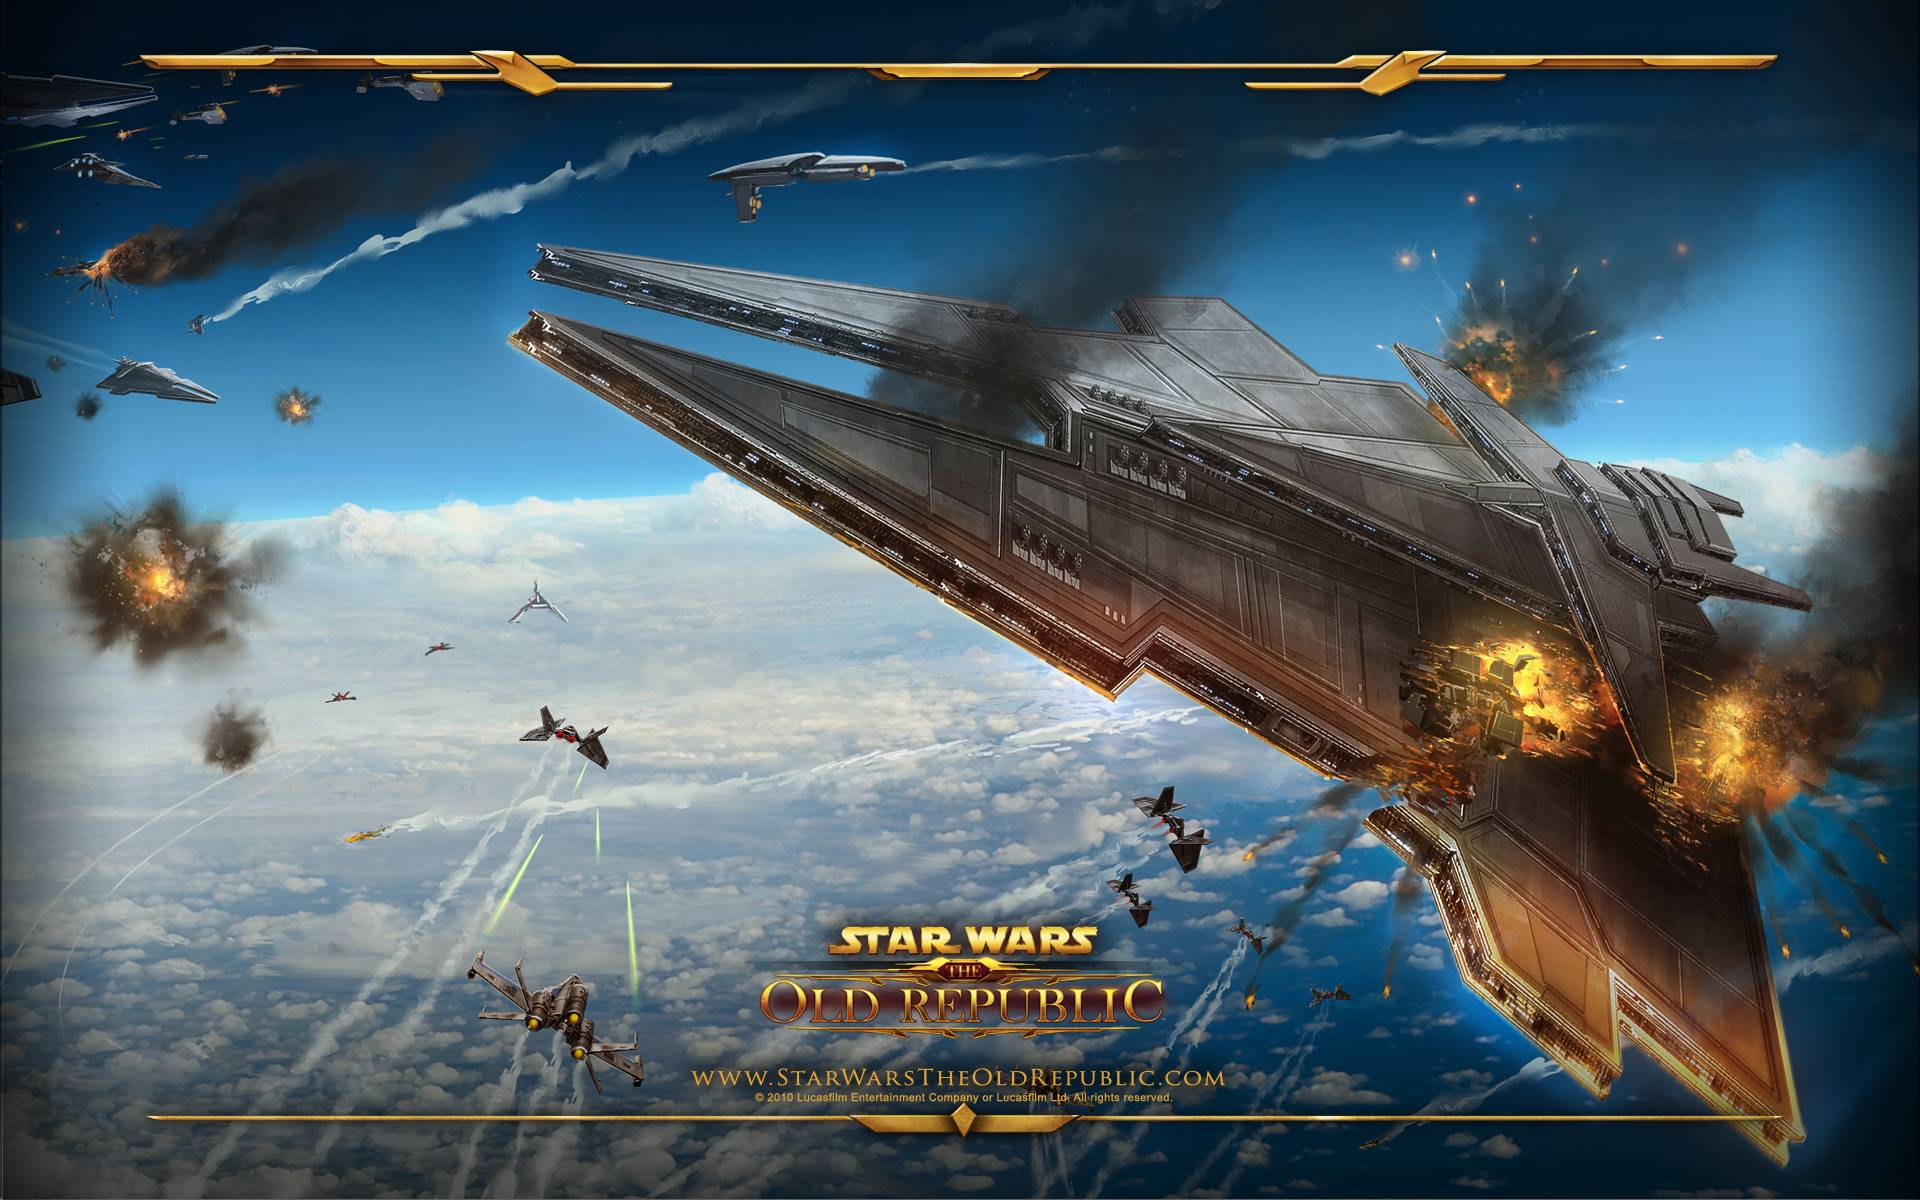 Star Wars The Old Republic Wallpapers Wallpaper Cave